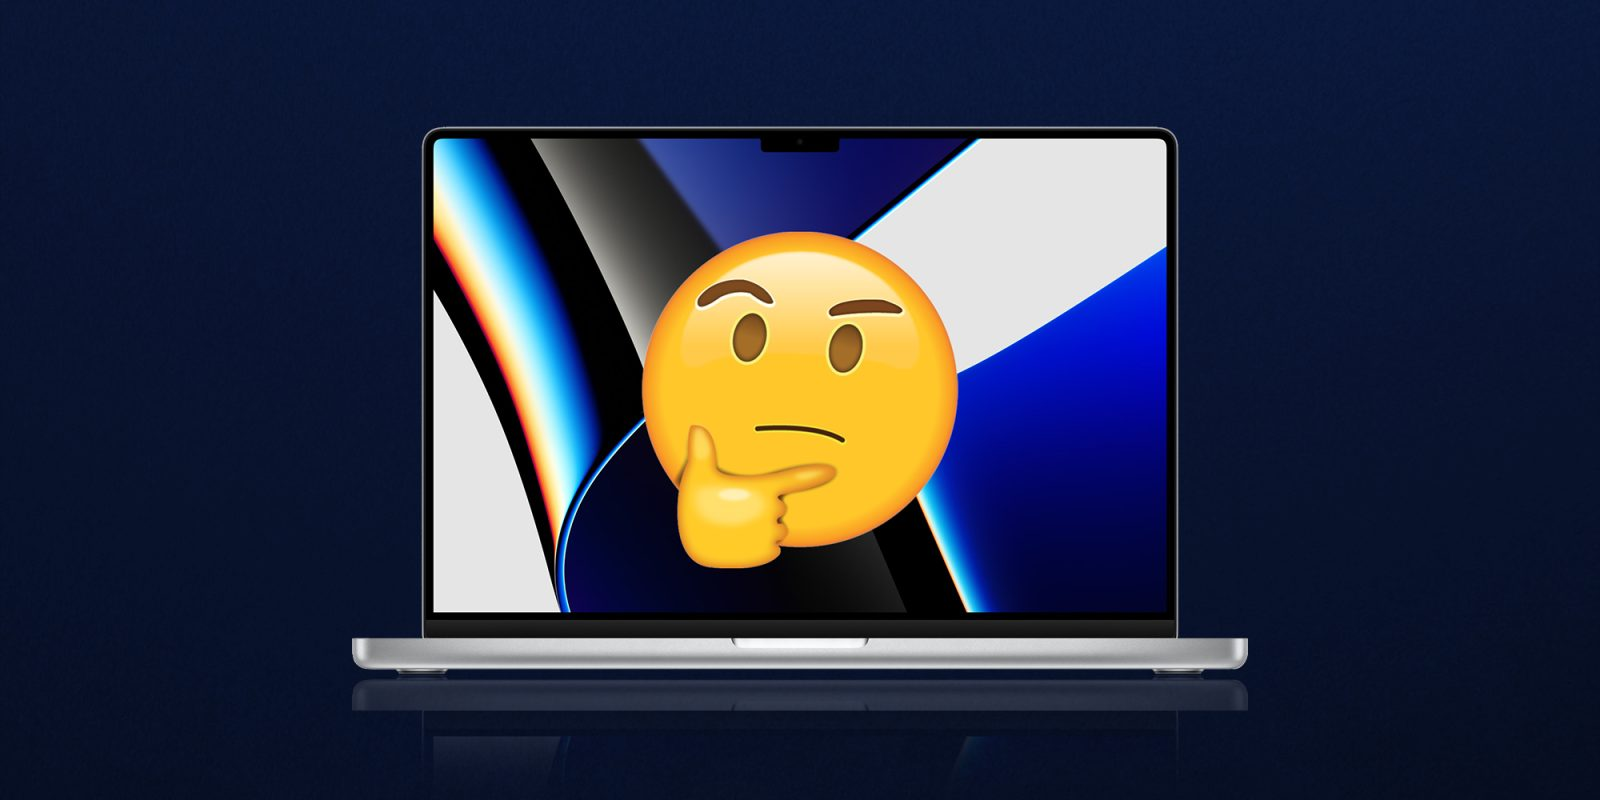 Poll: What do you think about the new MacBook Pro having a notch on the screen?